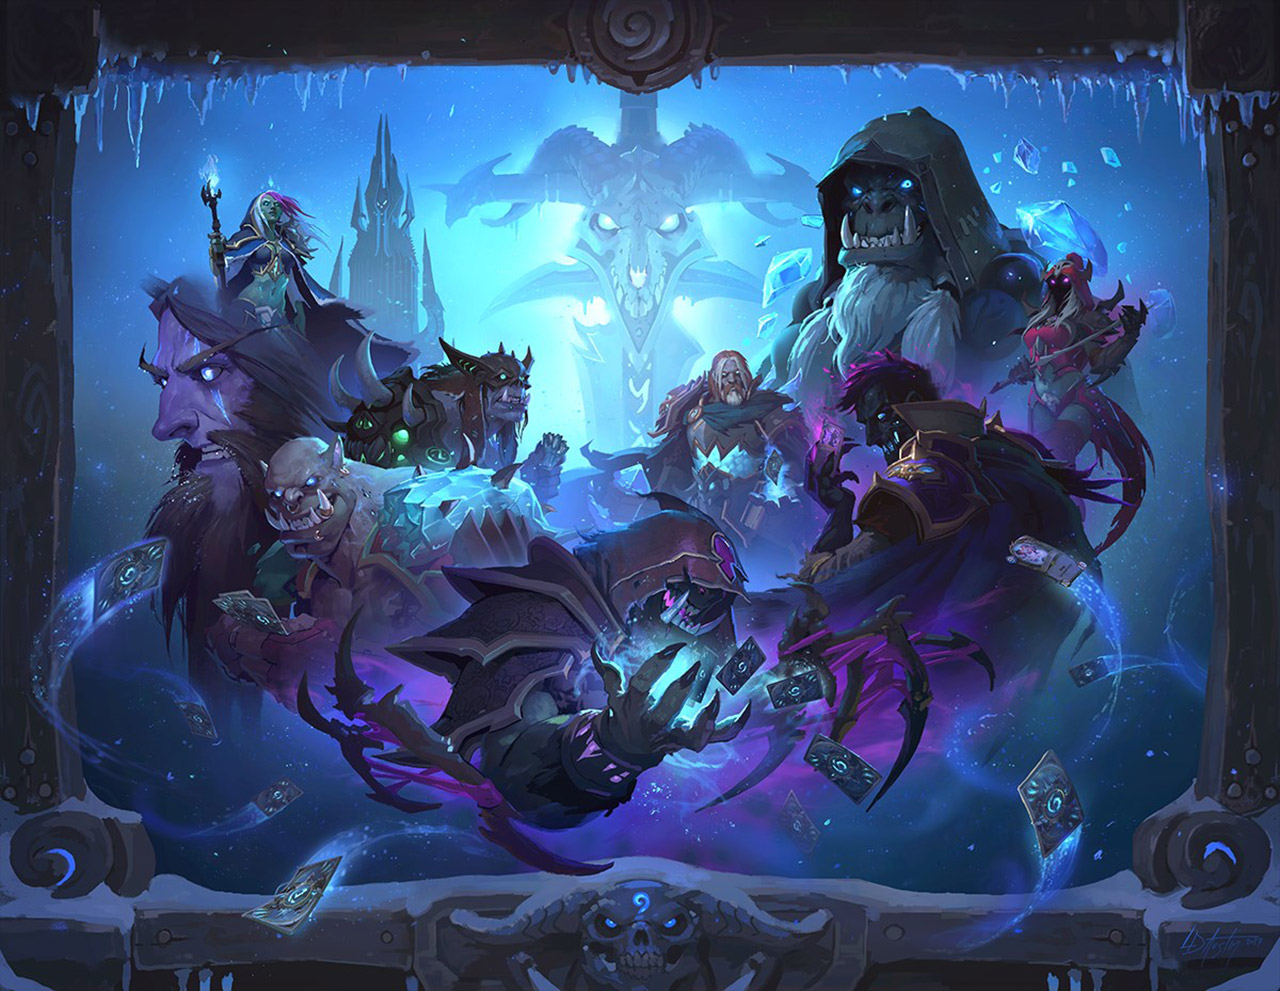 The Solo Missions for 'Hearthstone' 'Knights of the Frozen